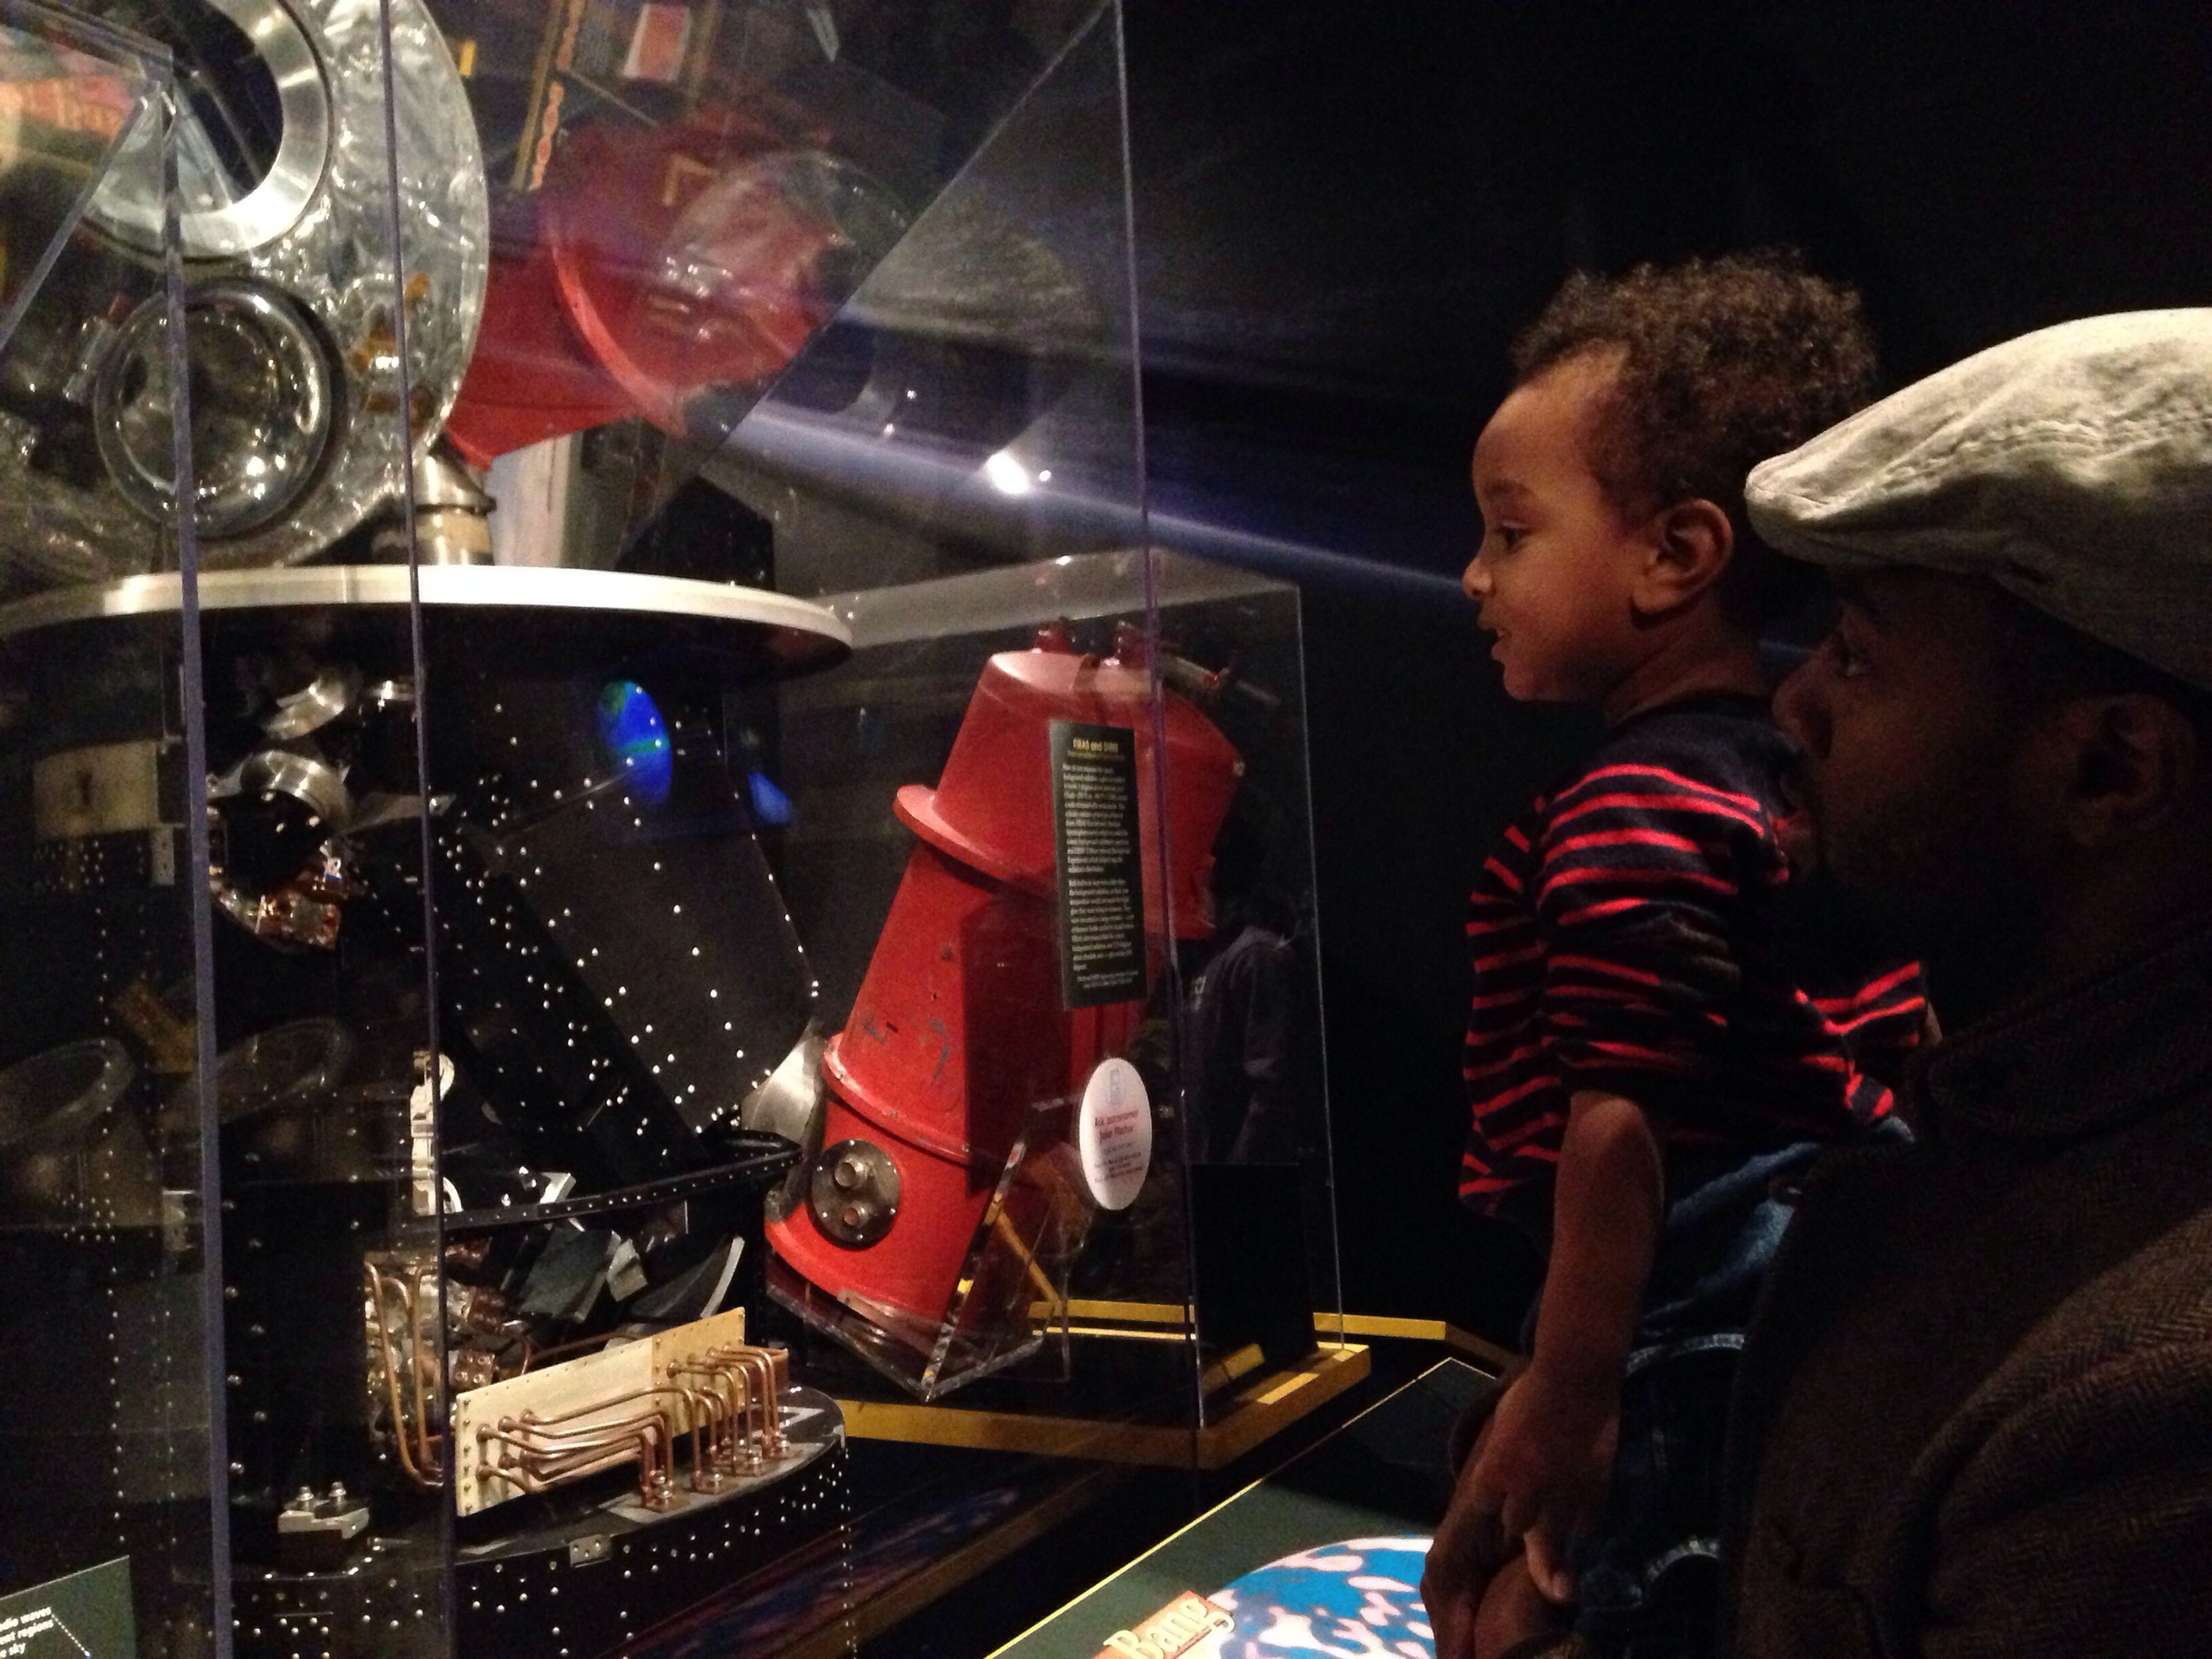 It was really great to see Ohm's face light up. He thoroughly enjoyed his trip to the Air and Space Museum. Too young to truly understand what was going on around him, we spent a good hour just looking at the airplanes, spacecrafts and exhibits.